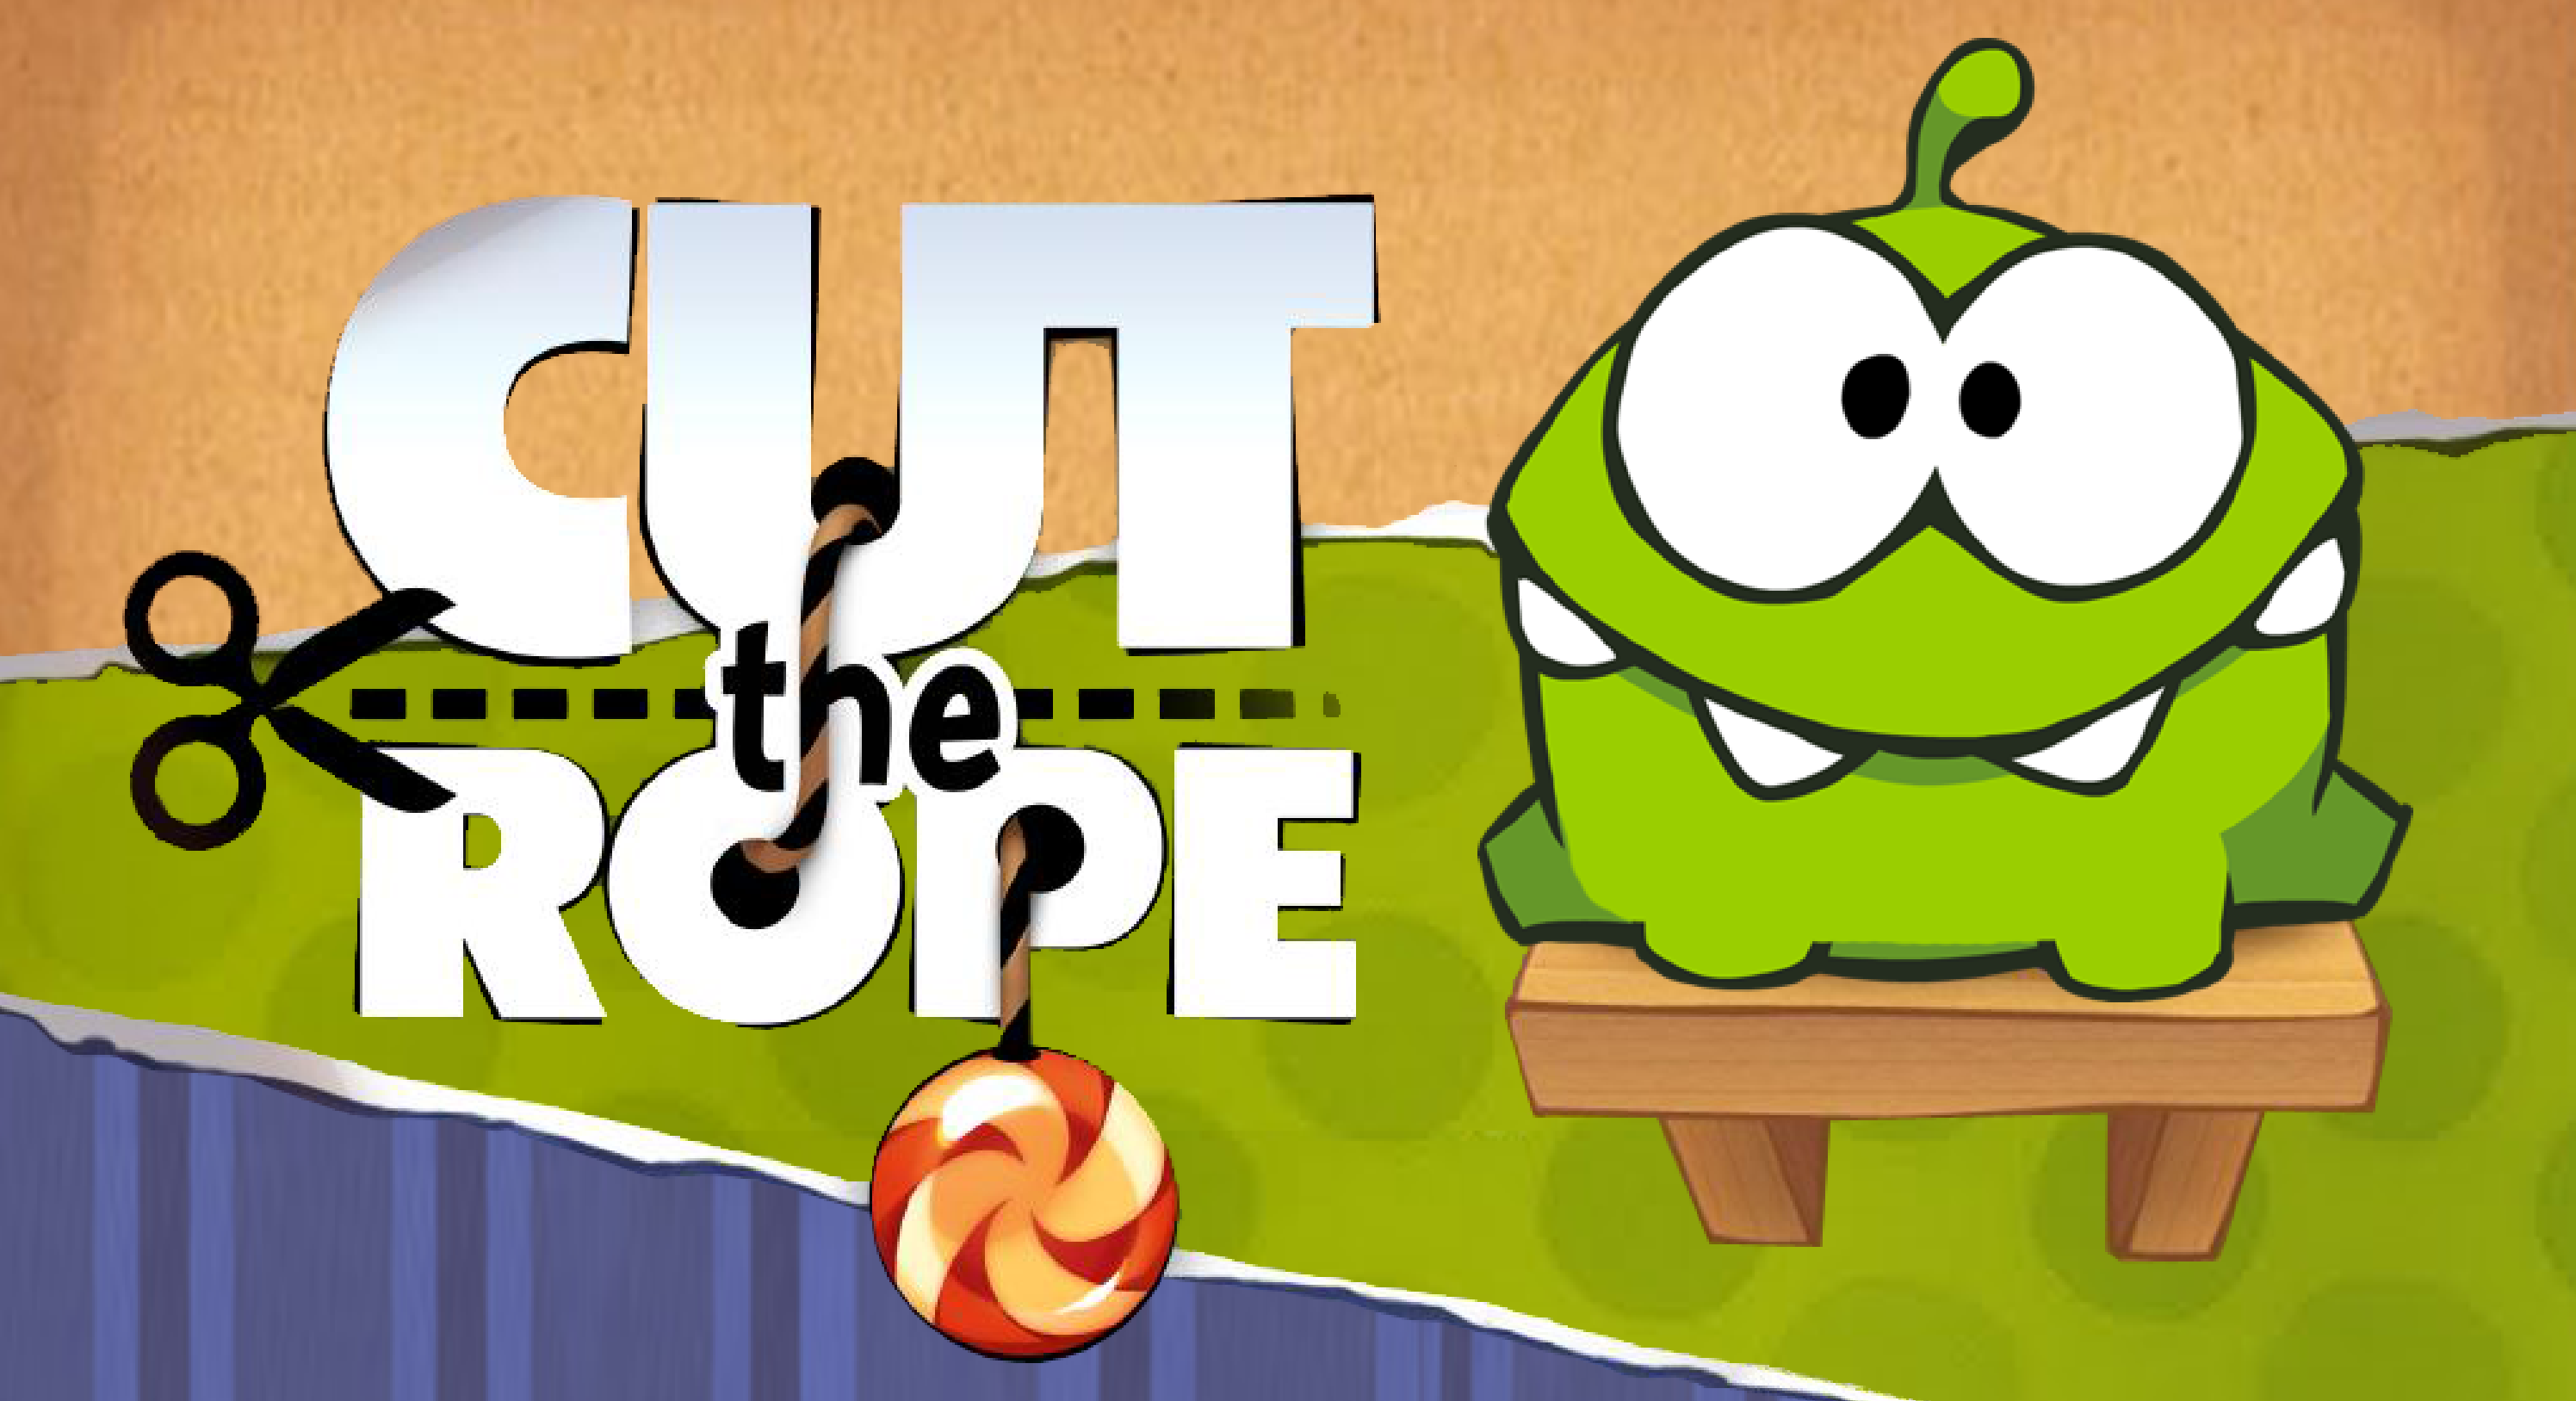 Play Cut The Rope on Poki - Online Games on Poki